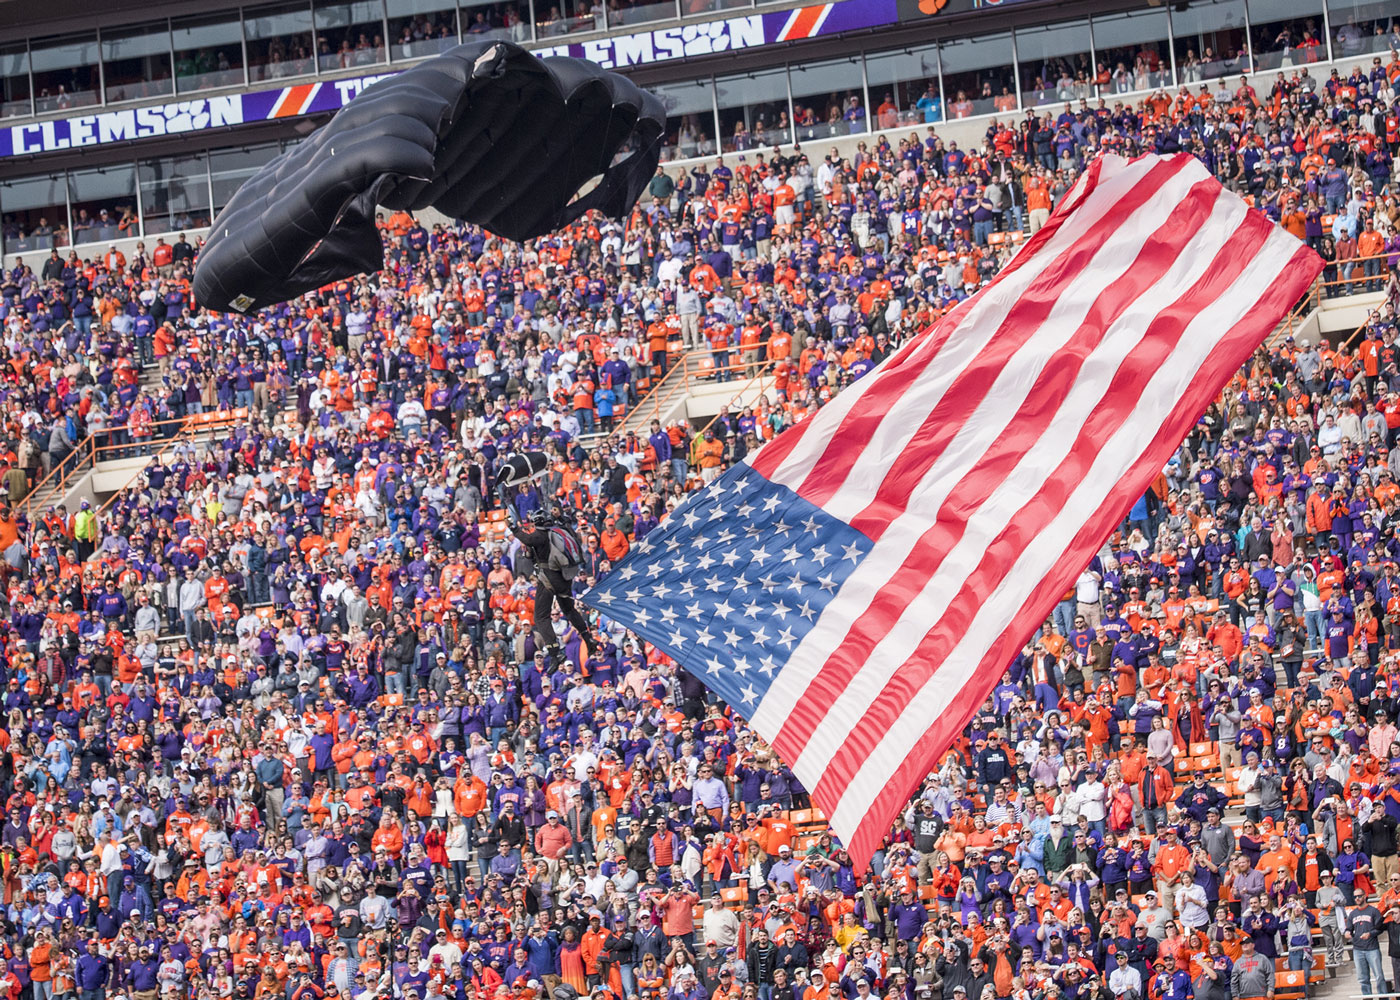 A paratrooper with the U.S. Army Special Forces Association Parachute Team from Fort Bragg parachutes into Clemson University's Memorial Stadium with the American flag before the Military Appreciation Game.